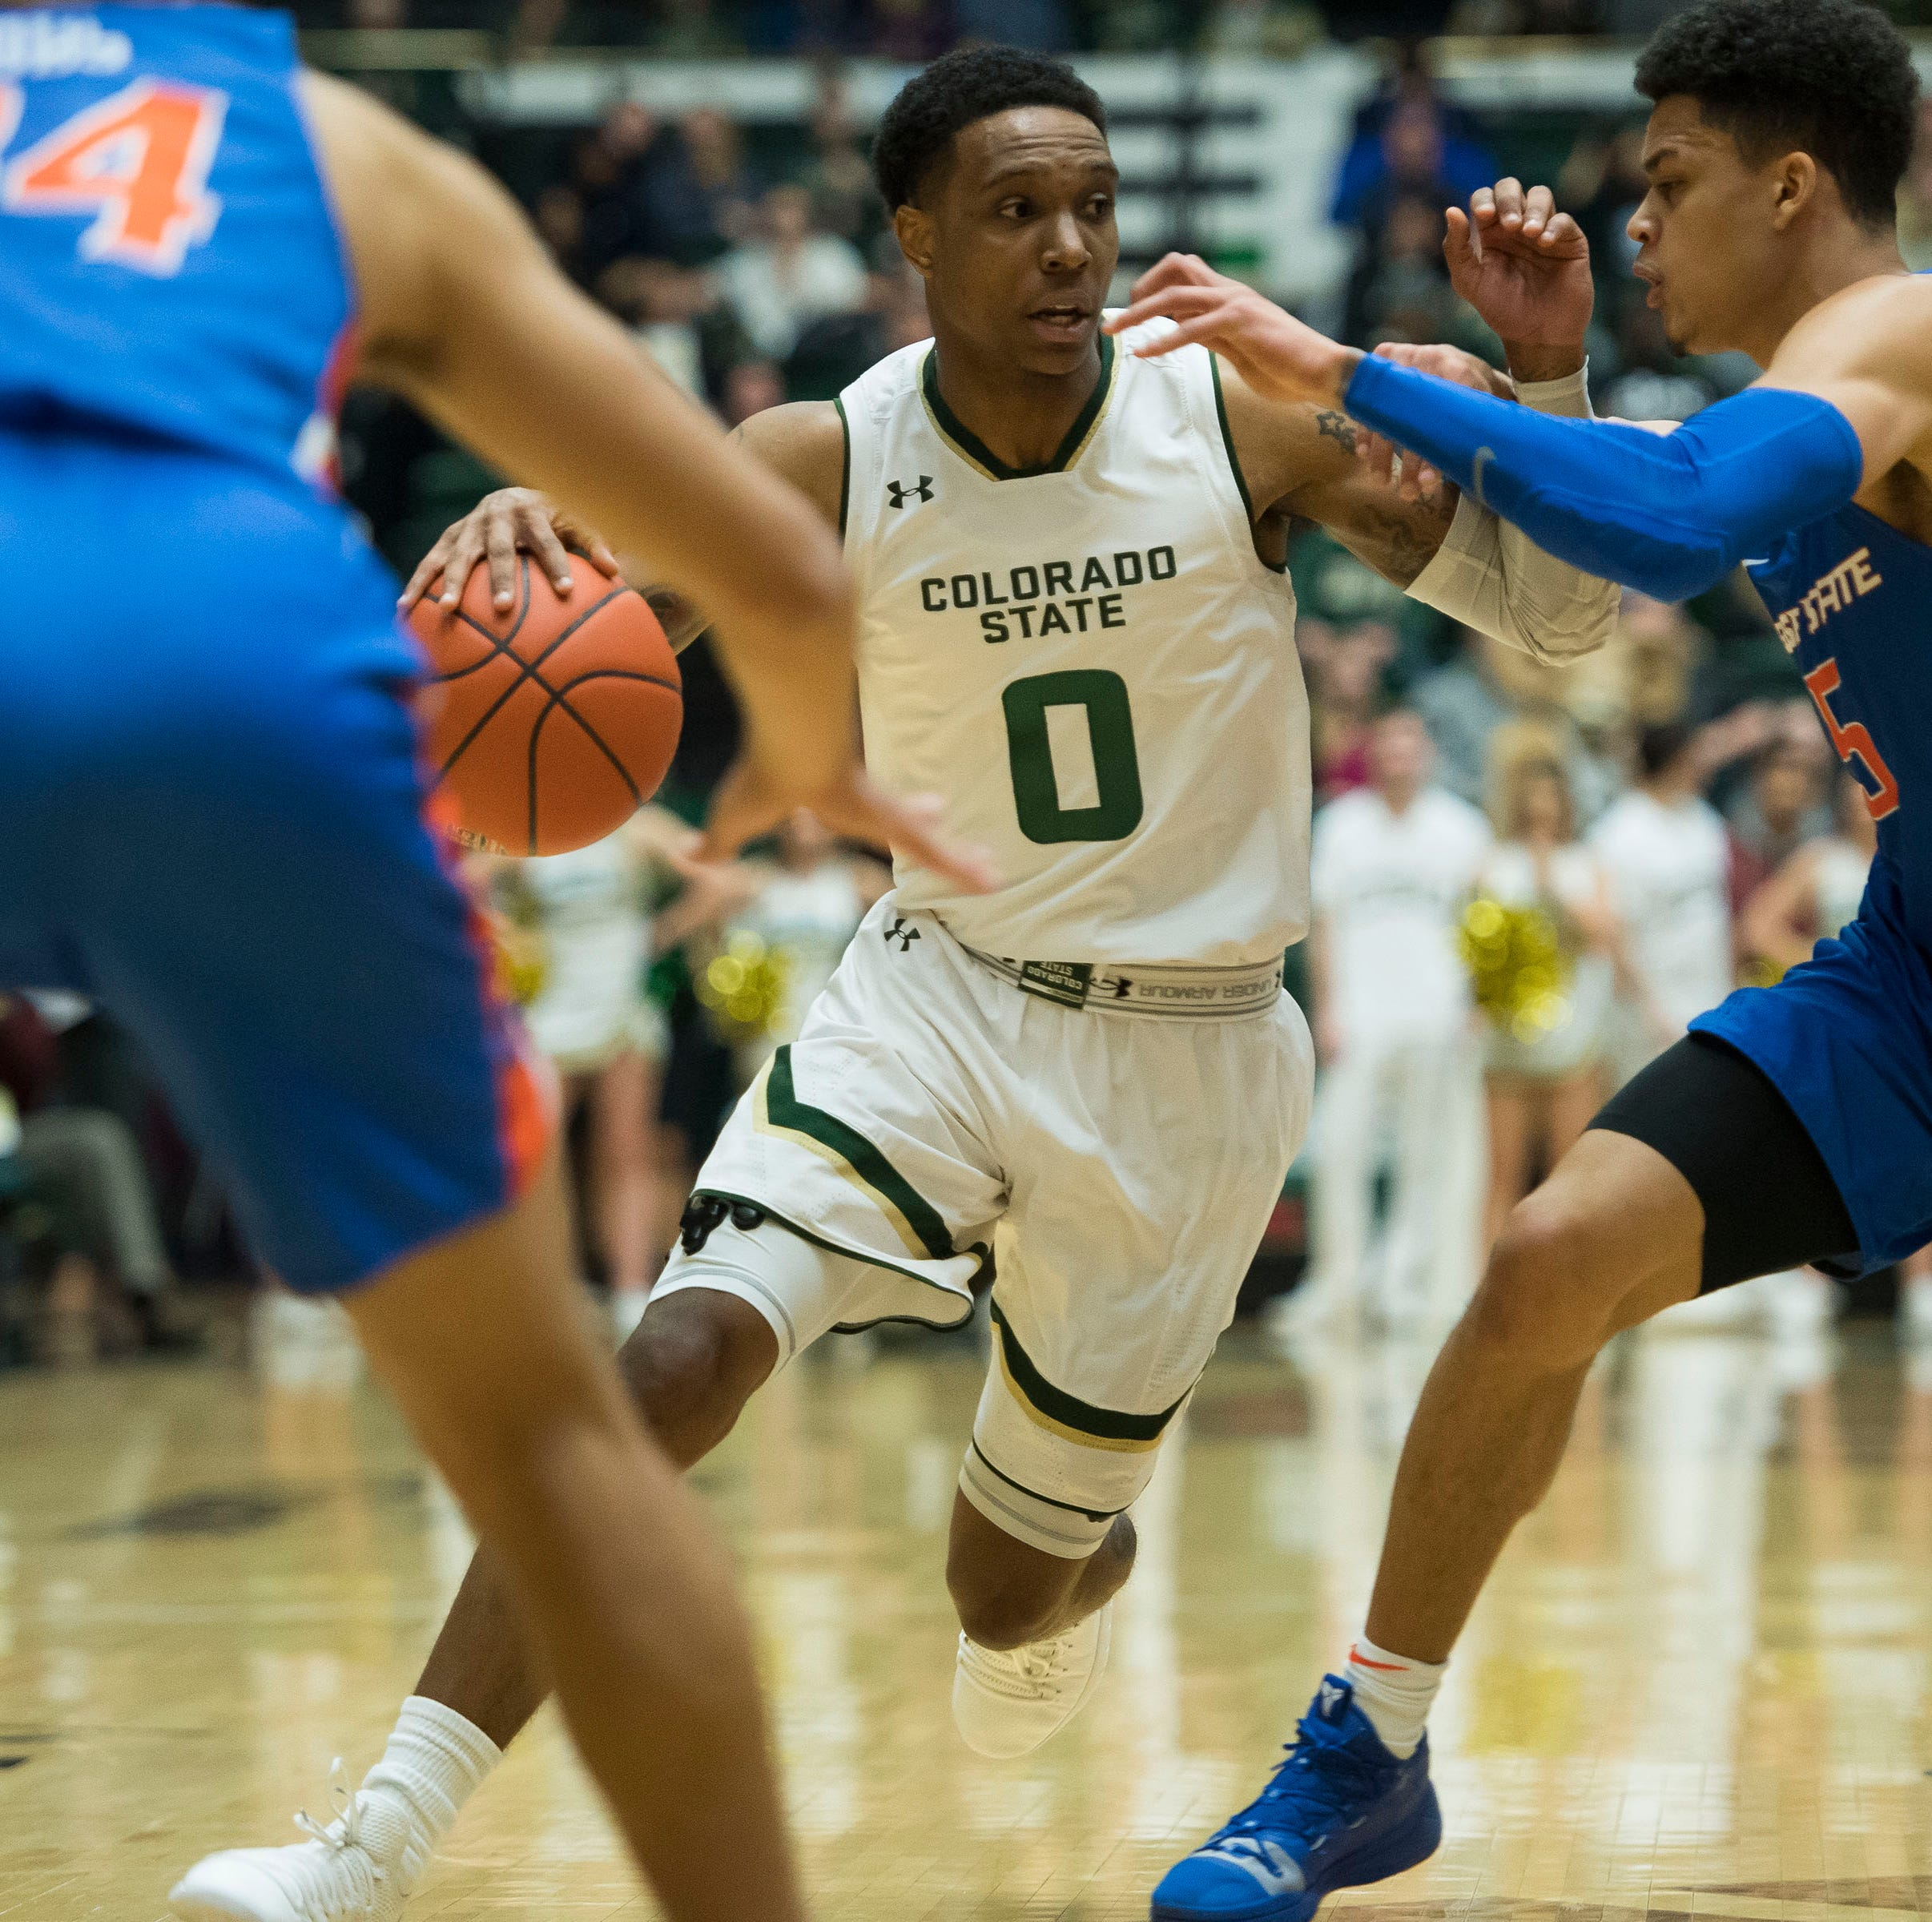 Colorado State basketball guard Hyron Edwards says he's going to transfer